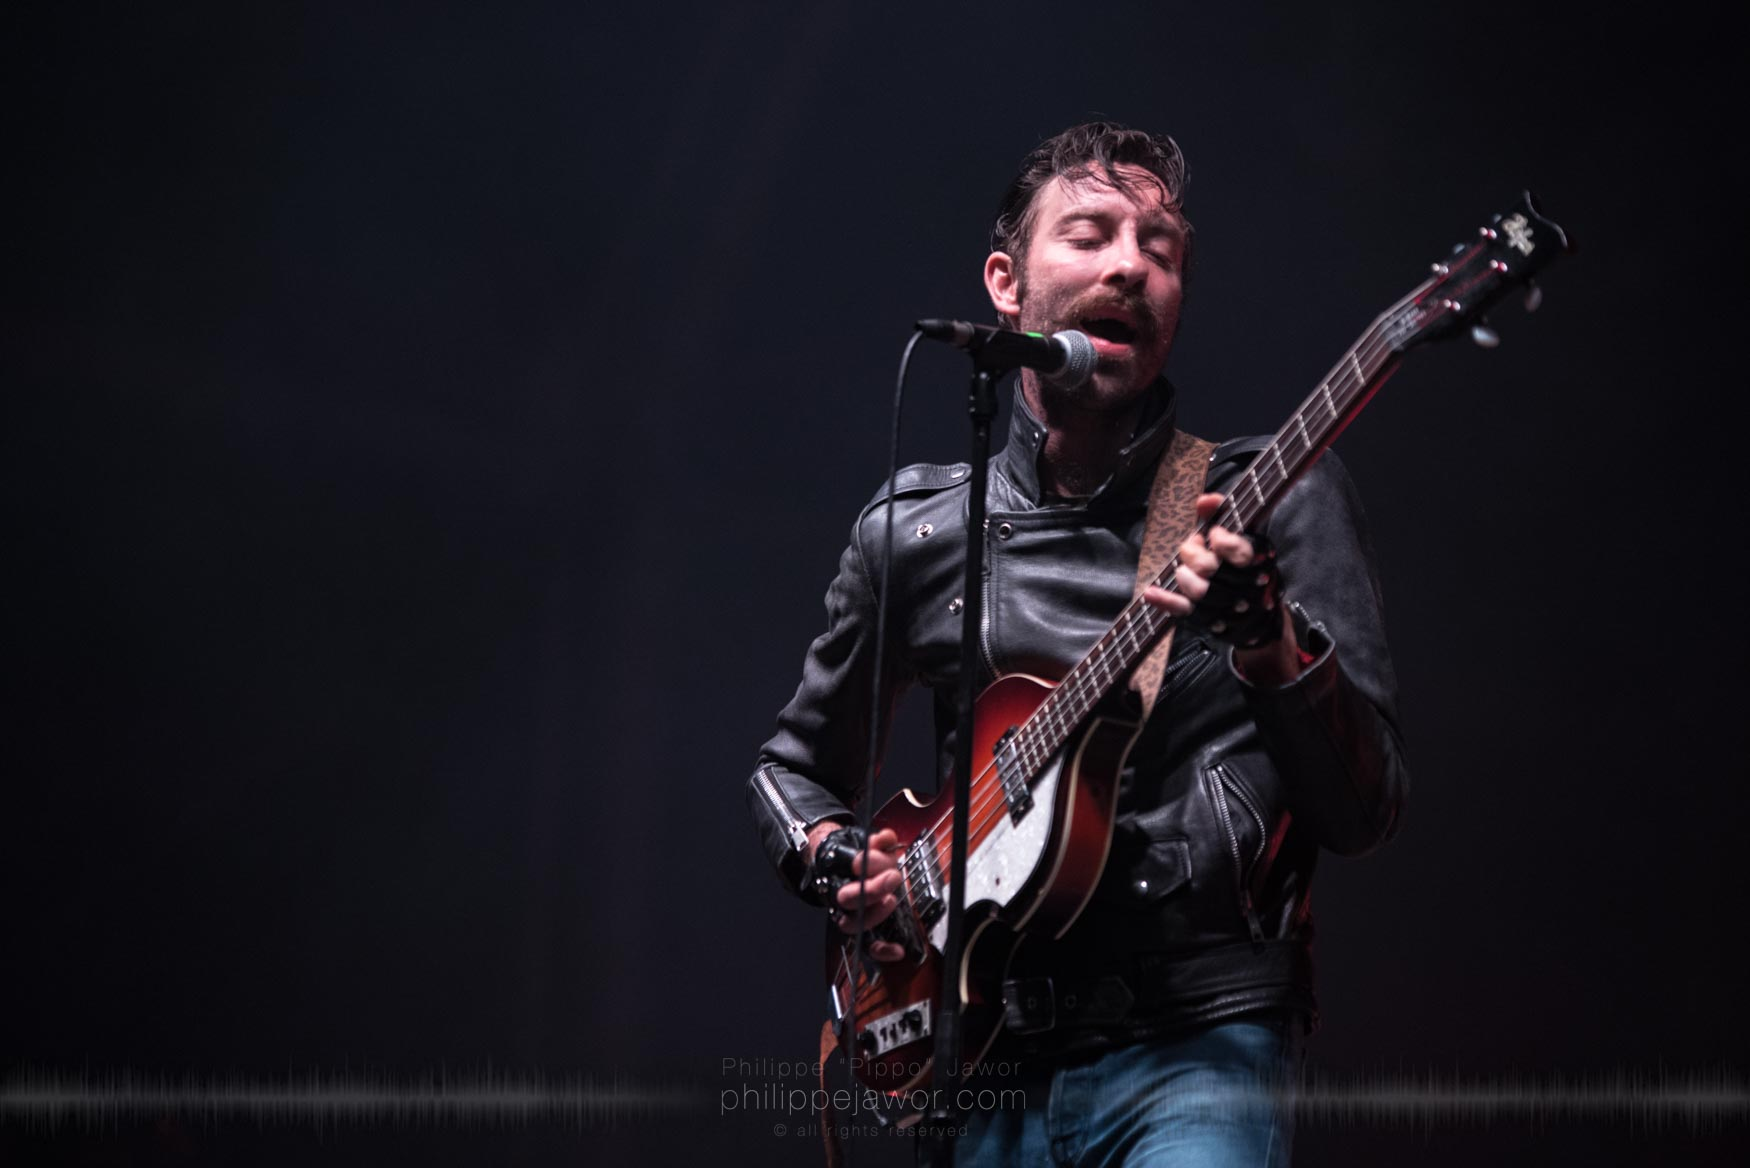 The American garage rock band Black Lips, live at Rock en Seine festival, Paris, France, August 2017.  On assignment for ZYVA Magazine All rights reserved.